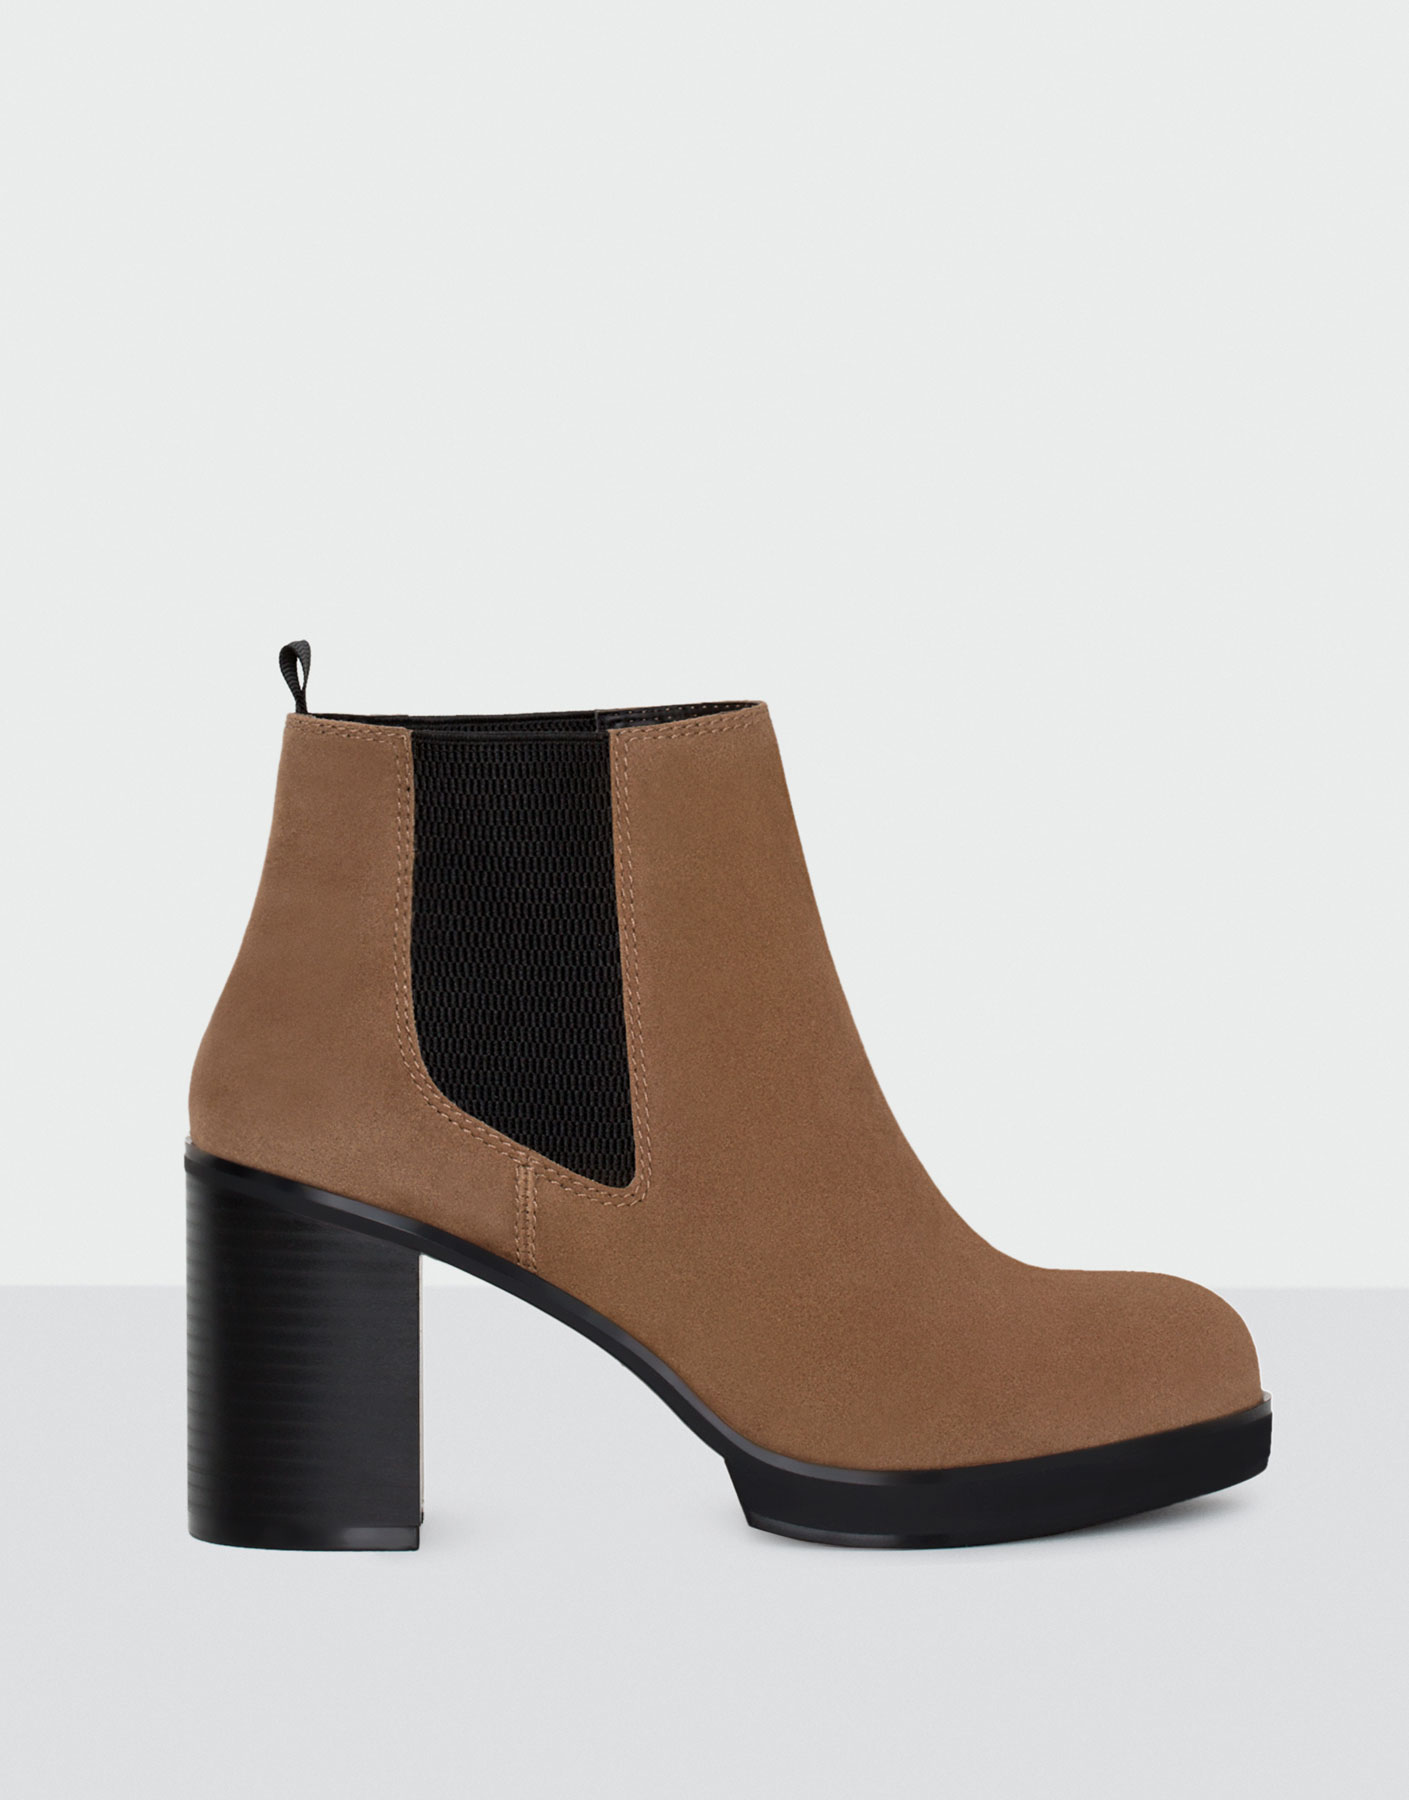 Contrast stretch high heel ankle boots